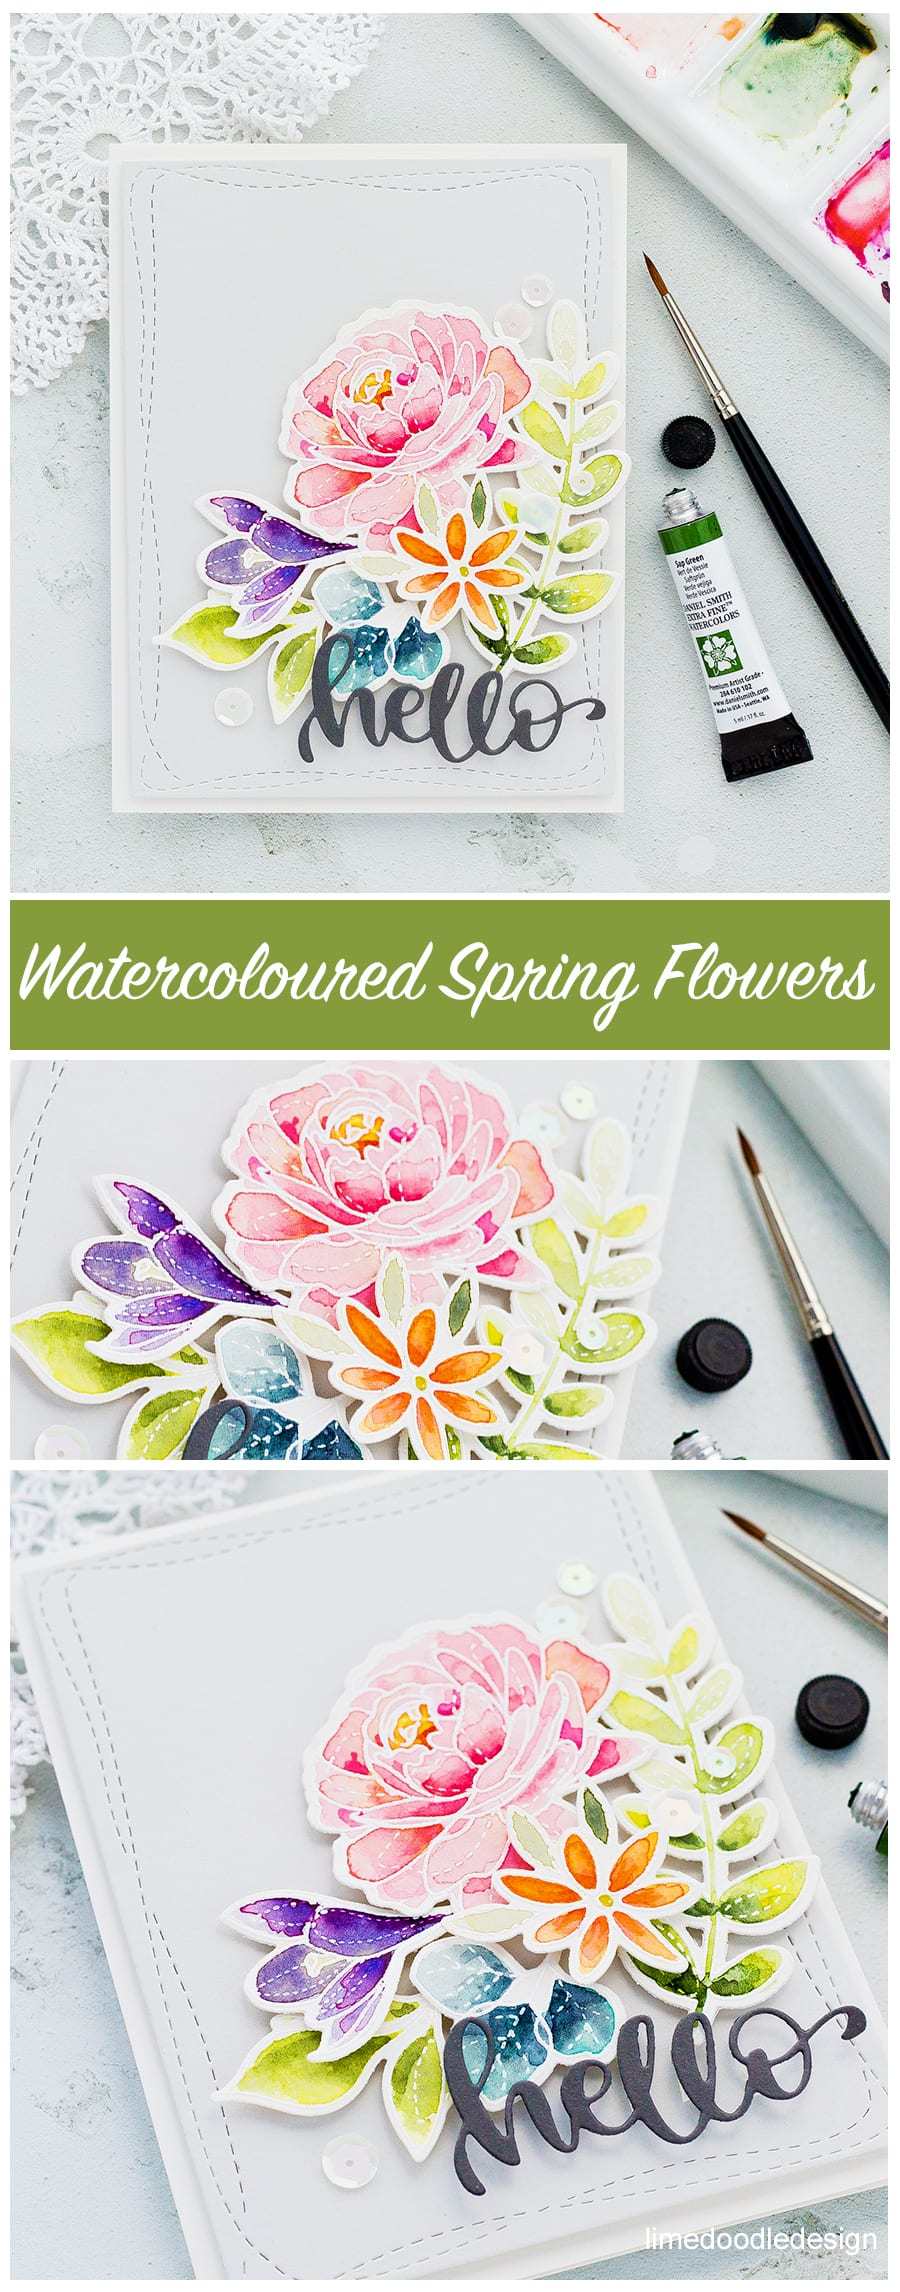 I'm wishing Spring was here and so I'm breaking out my Spring Flowers sets and watercolouring a quick card. You can find more about this handmade card by Debby Hughes here: https://limedoodledesign.com/2018/02/breaking-out-the-spring-flowers/